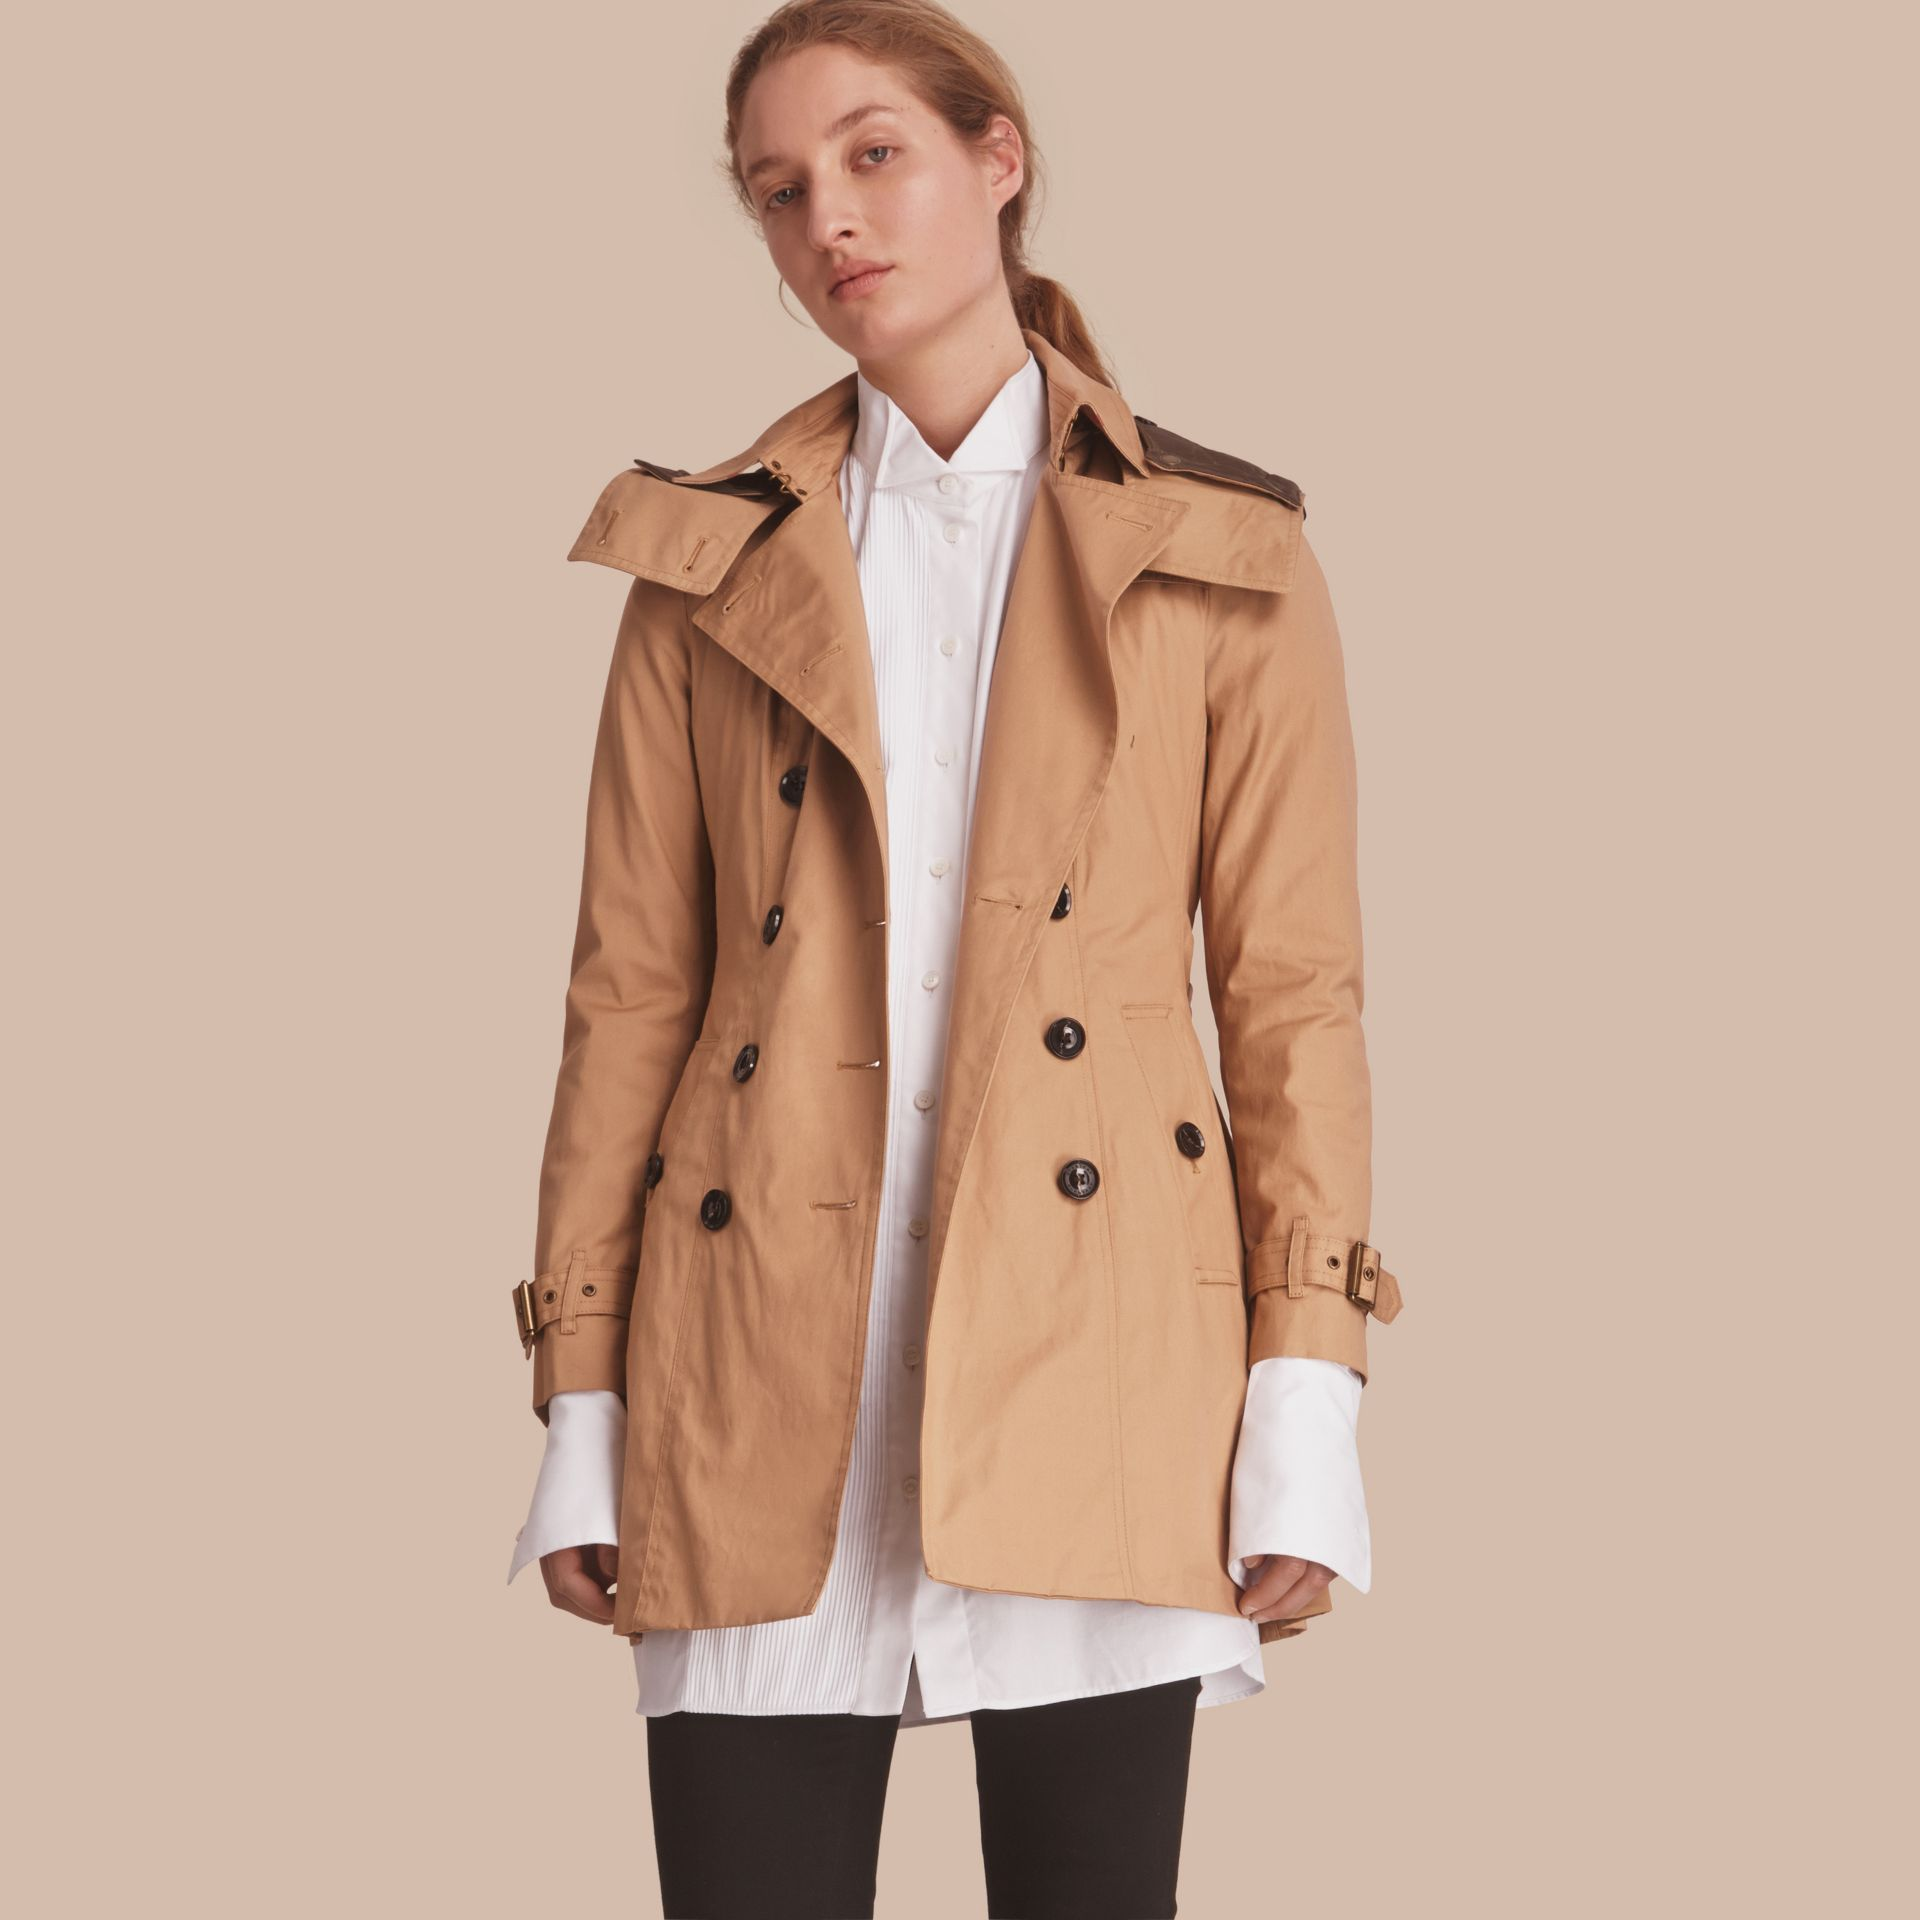 Hooded Trench Coat with Warmer in Light Camel - Women | Burberry - gallery image 1